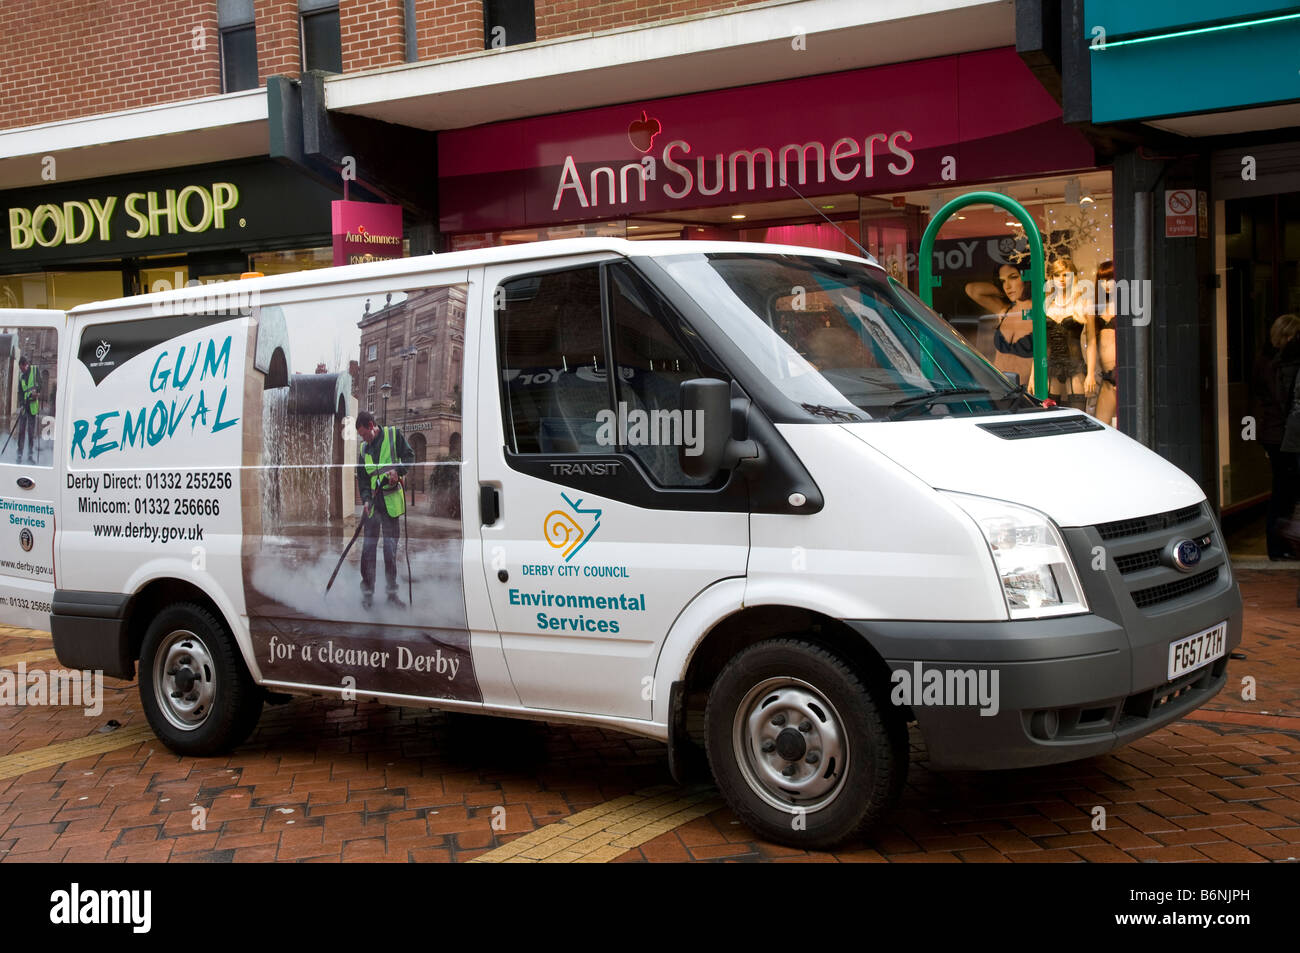 Gum Removal contractors & van outside Ann Summers. Derby, Derbyshire, UK - Stock Image